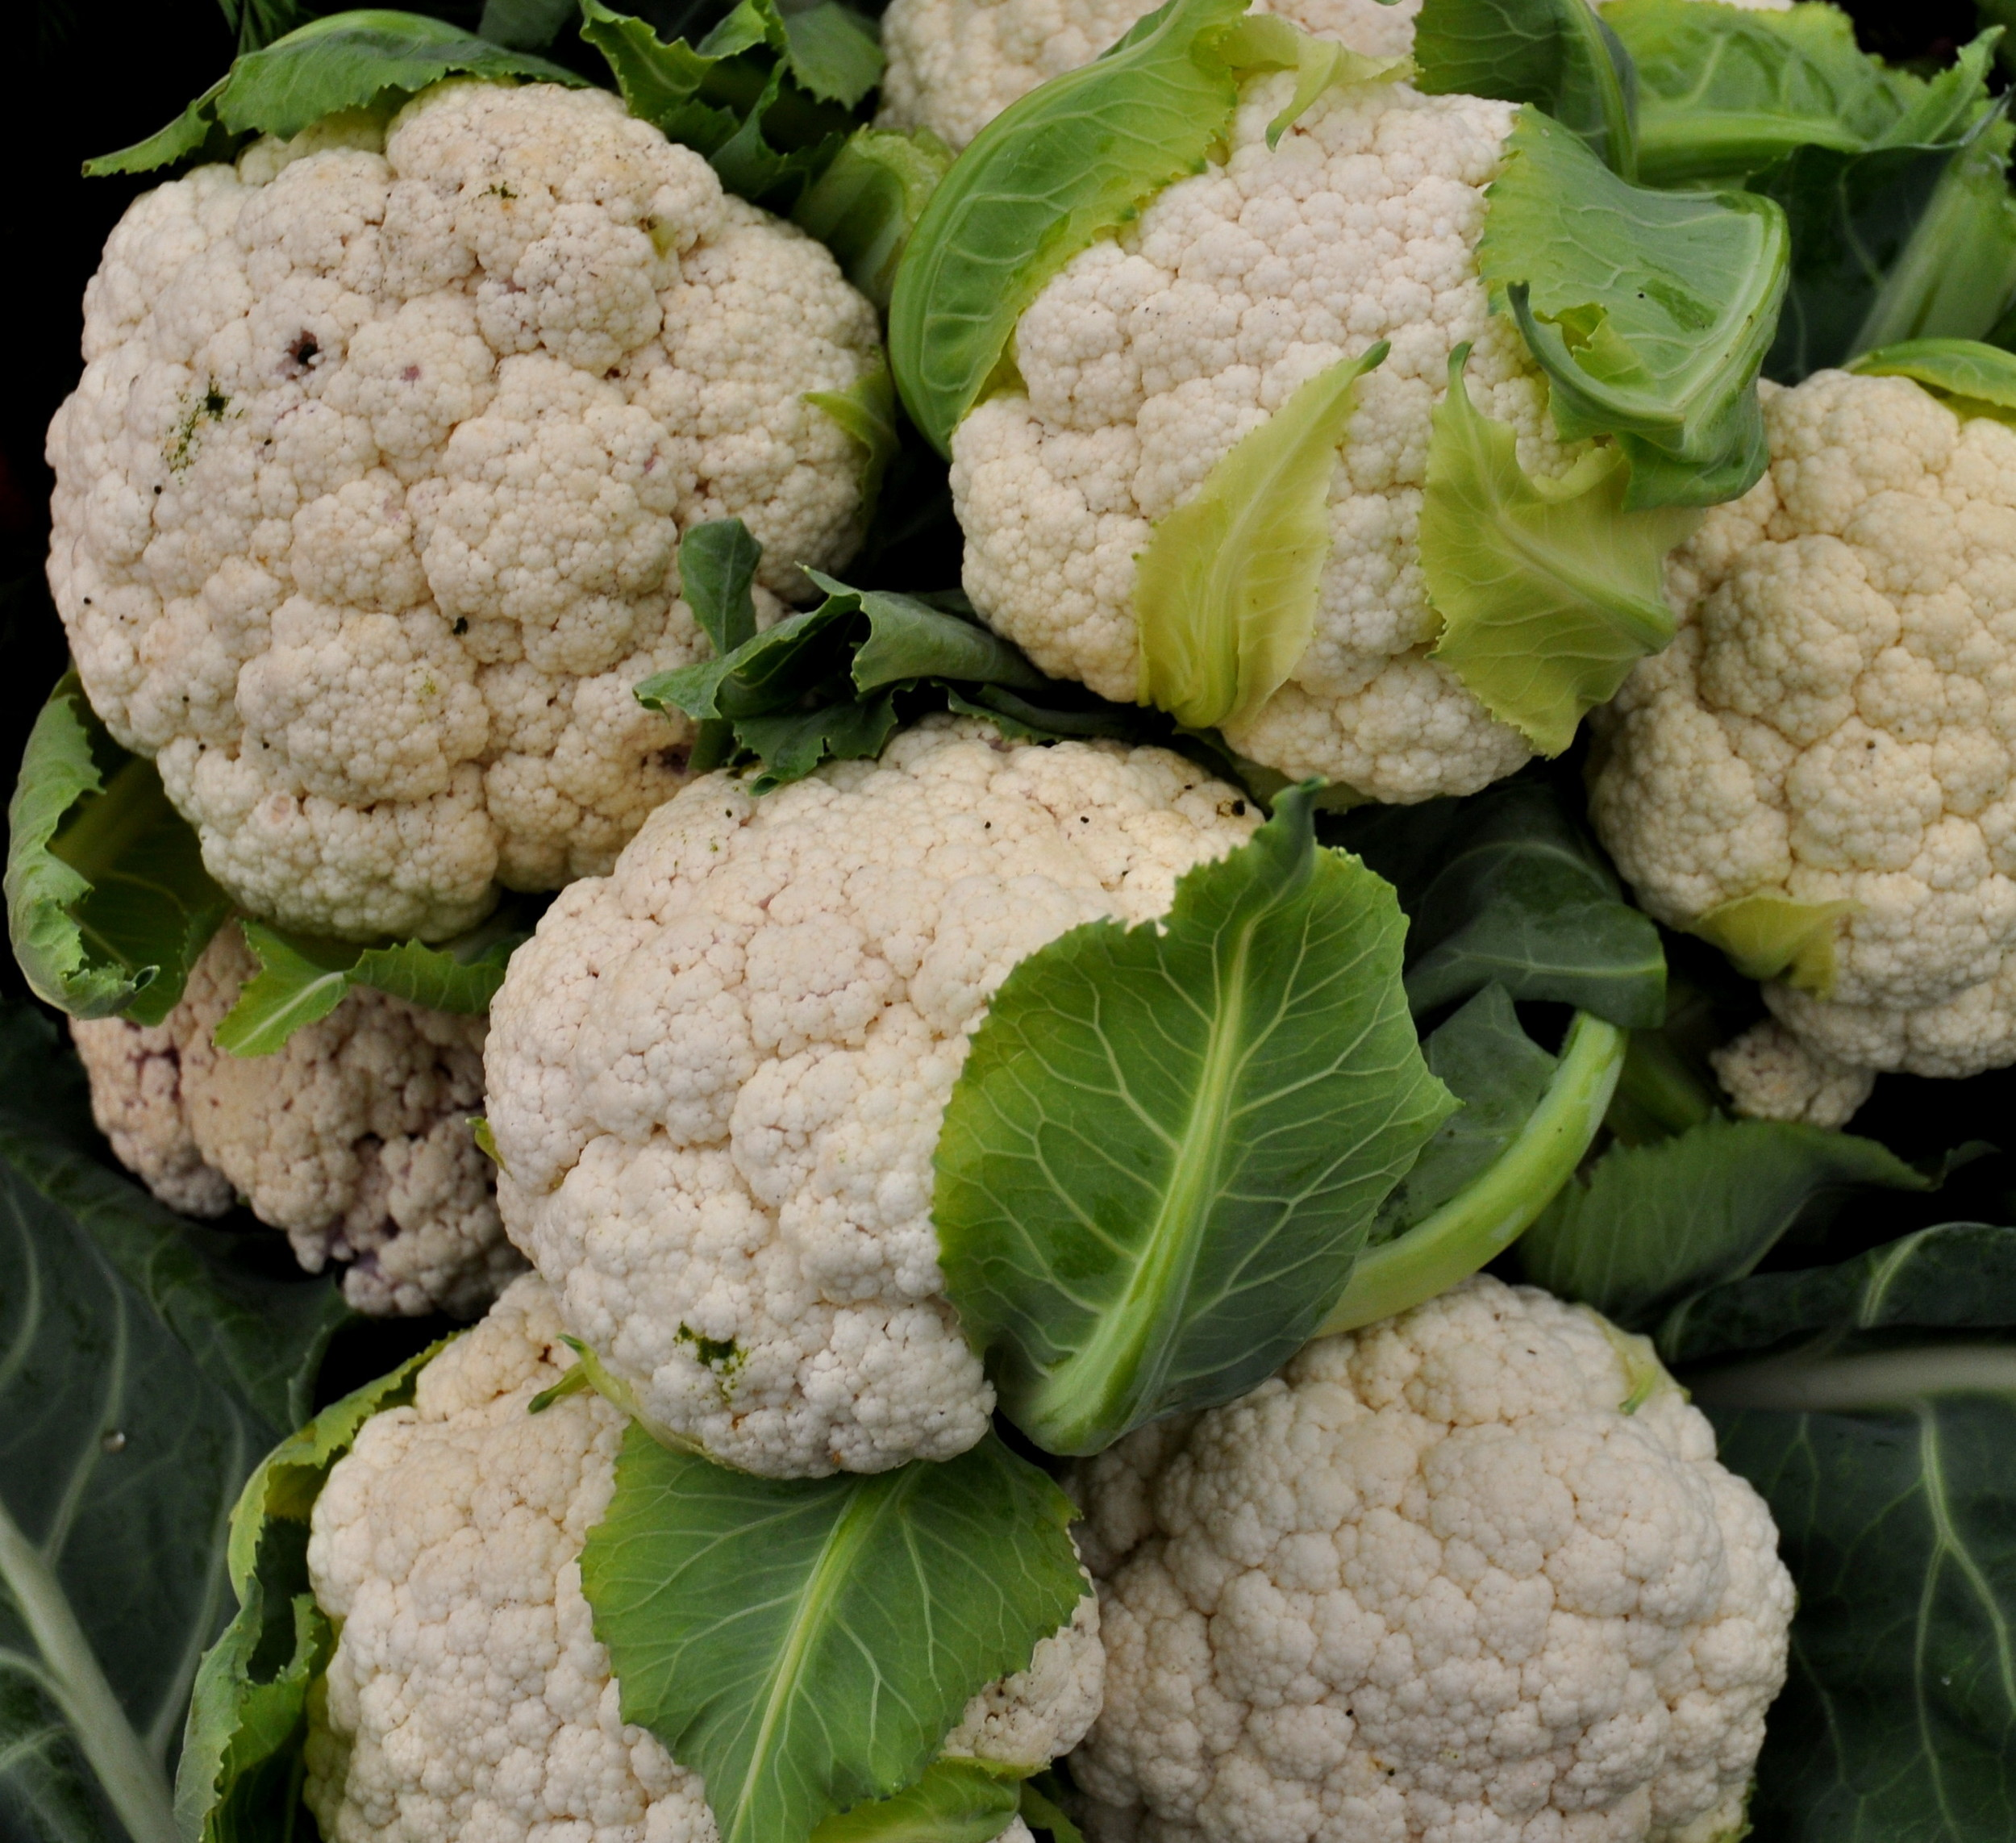 Cauliflower from Kirsop Farm. Photo copyright 2014 by Zachary D. Lyons.